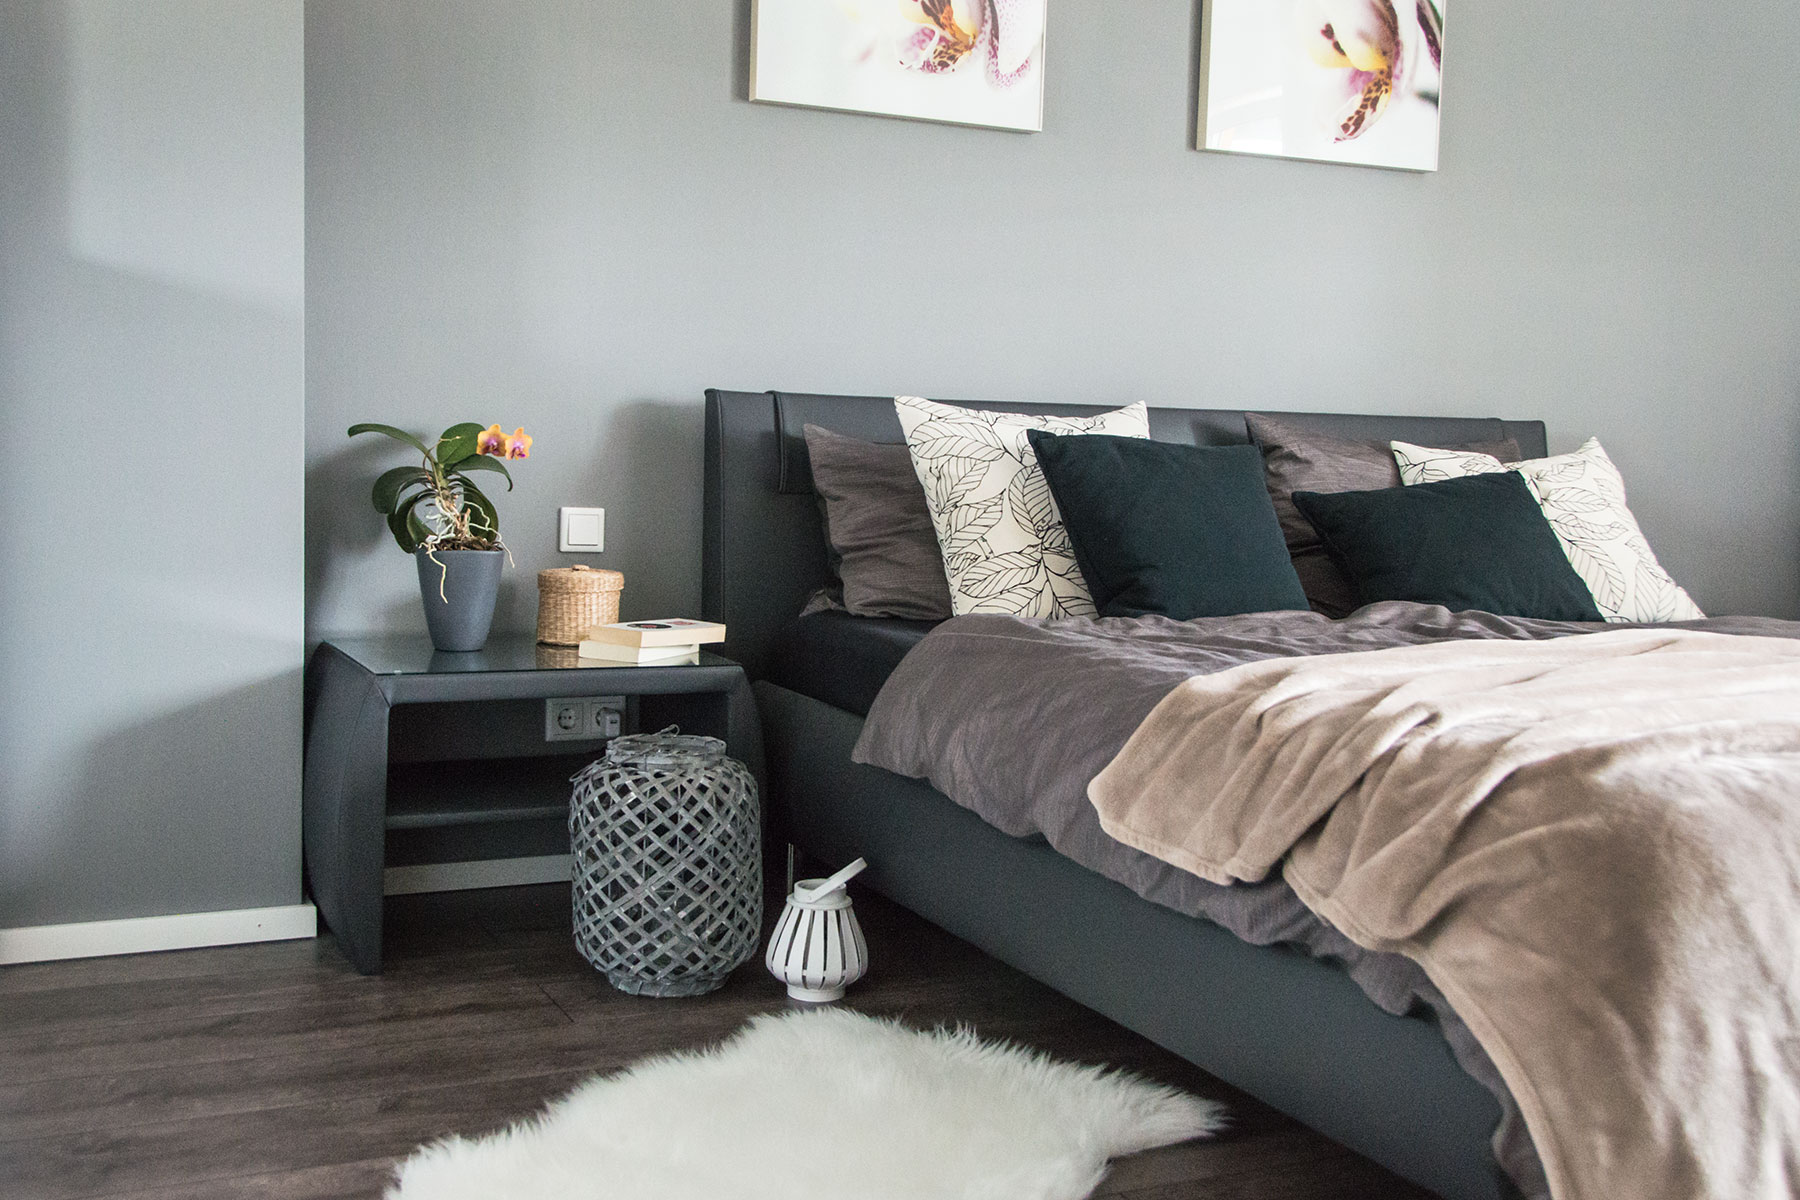 anzeige make your bed the cosiest place on earth marie theres schindler beauty blog. Black Bedroom Furniture Sets. Home Design Ideas